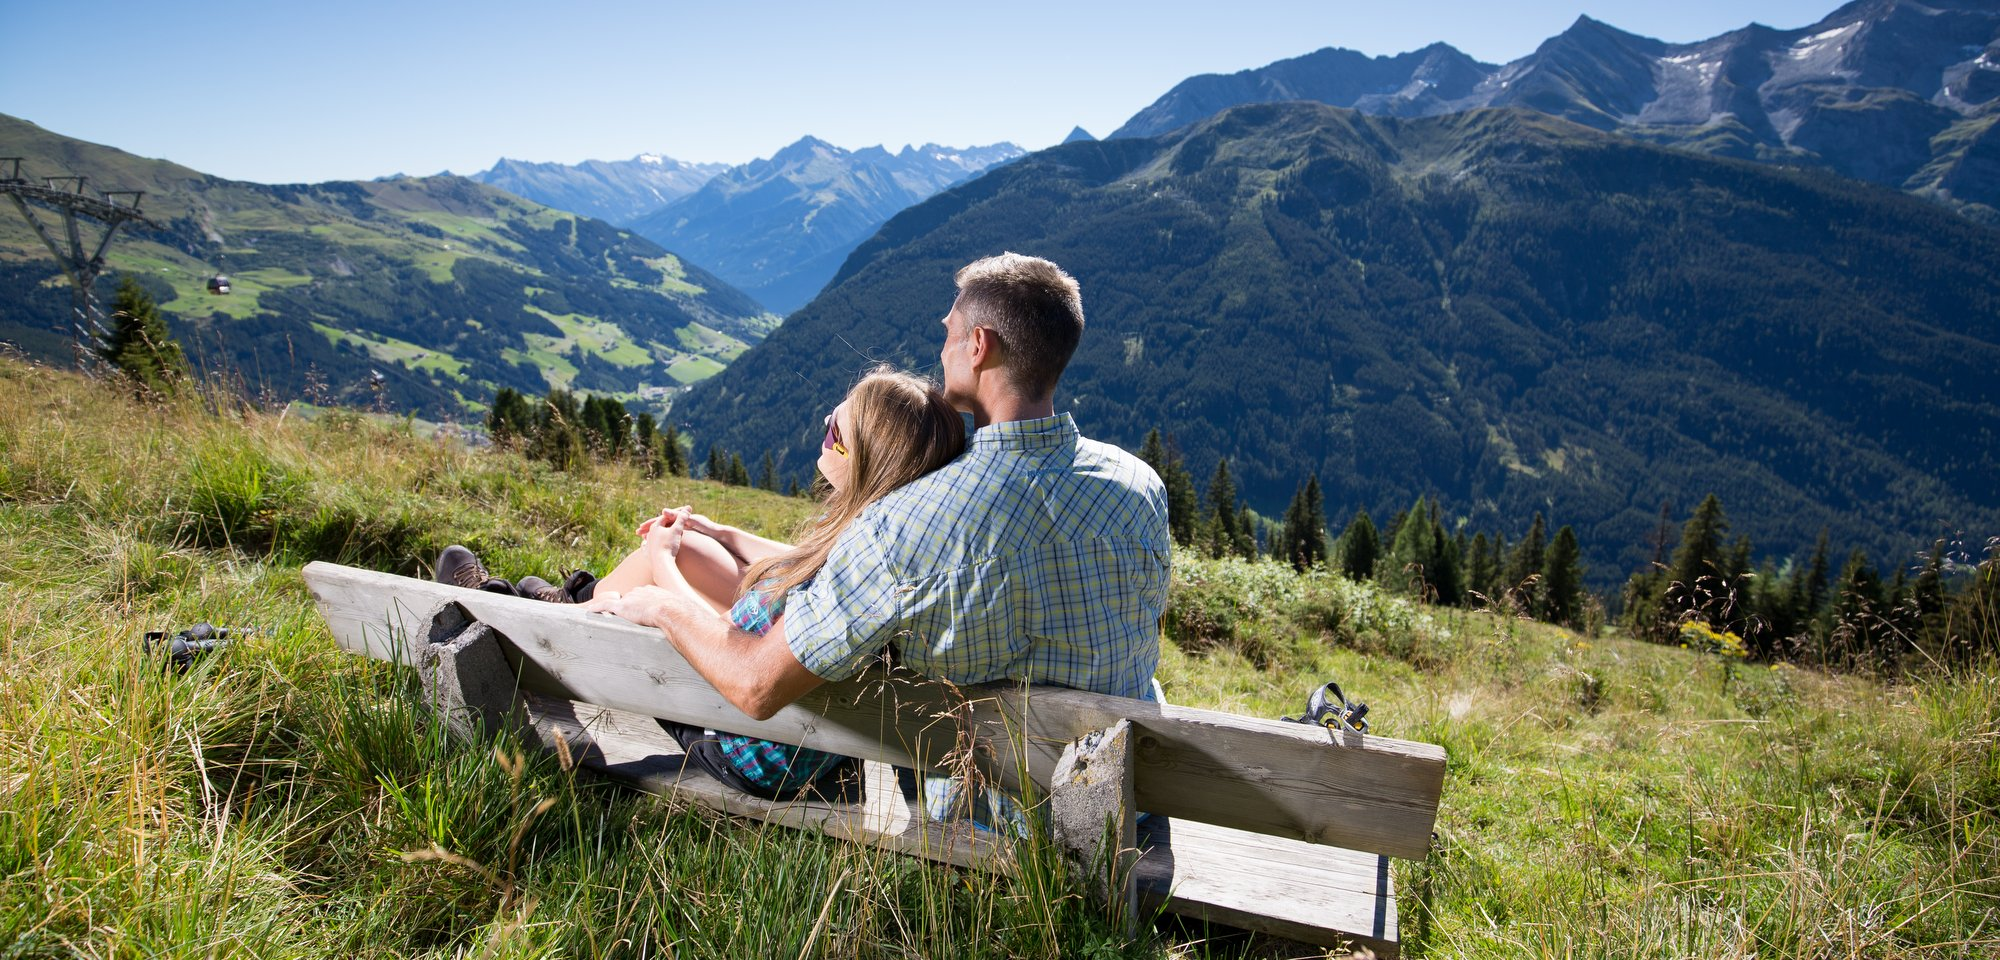 Glacier hotel Hintertuxerhof in Tyrol - the perfect location for your  holidays